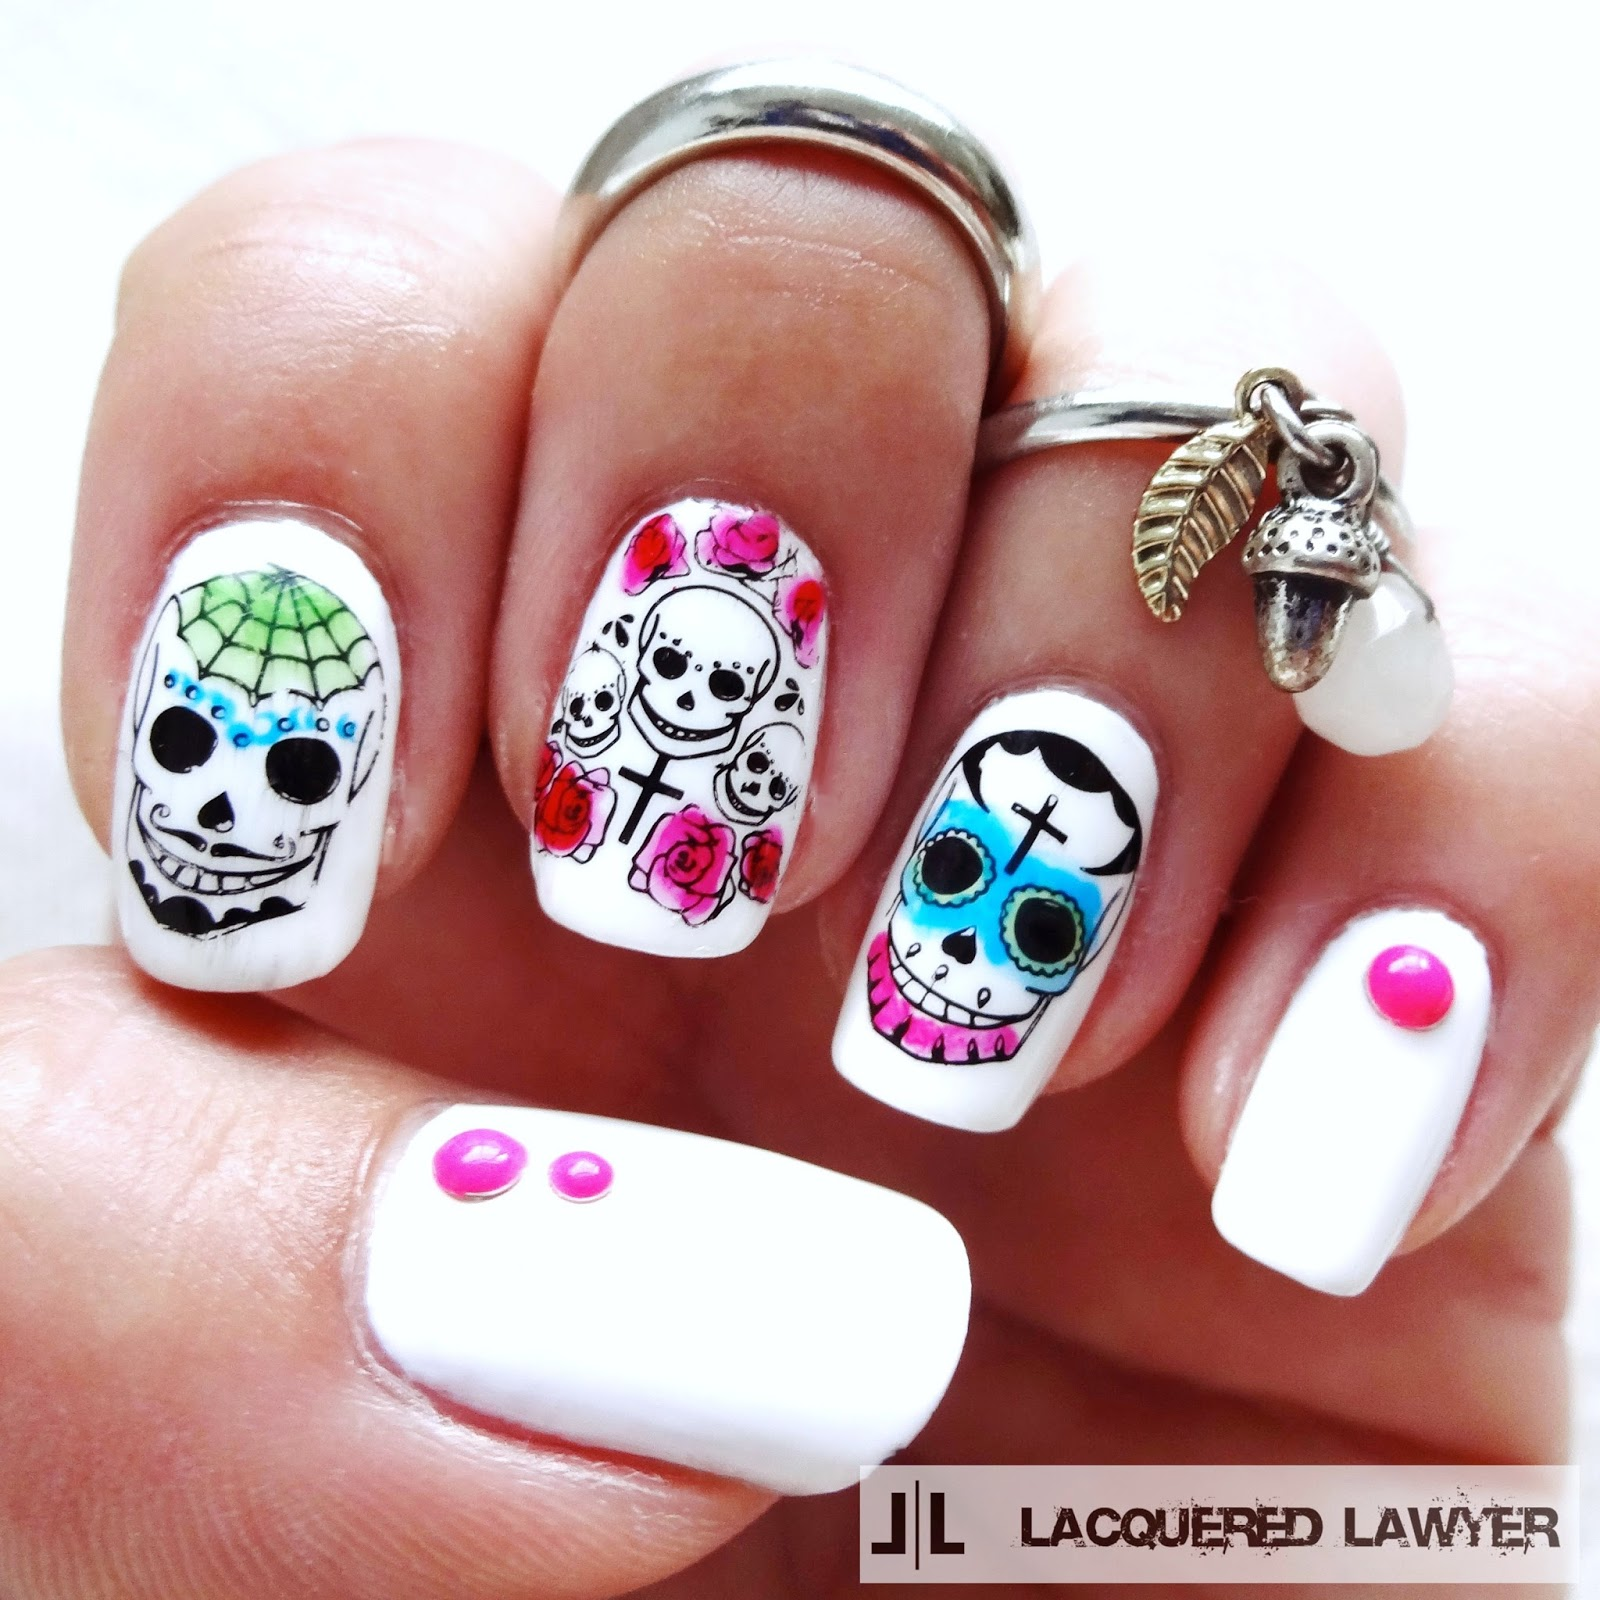 Lacquered Lawyer | Nail Art Blog: October 2014